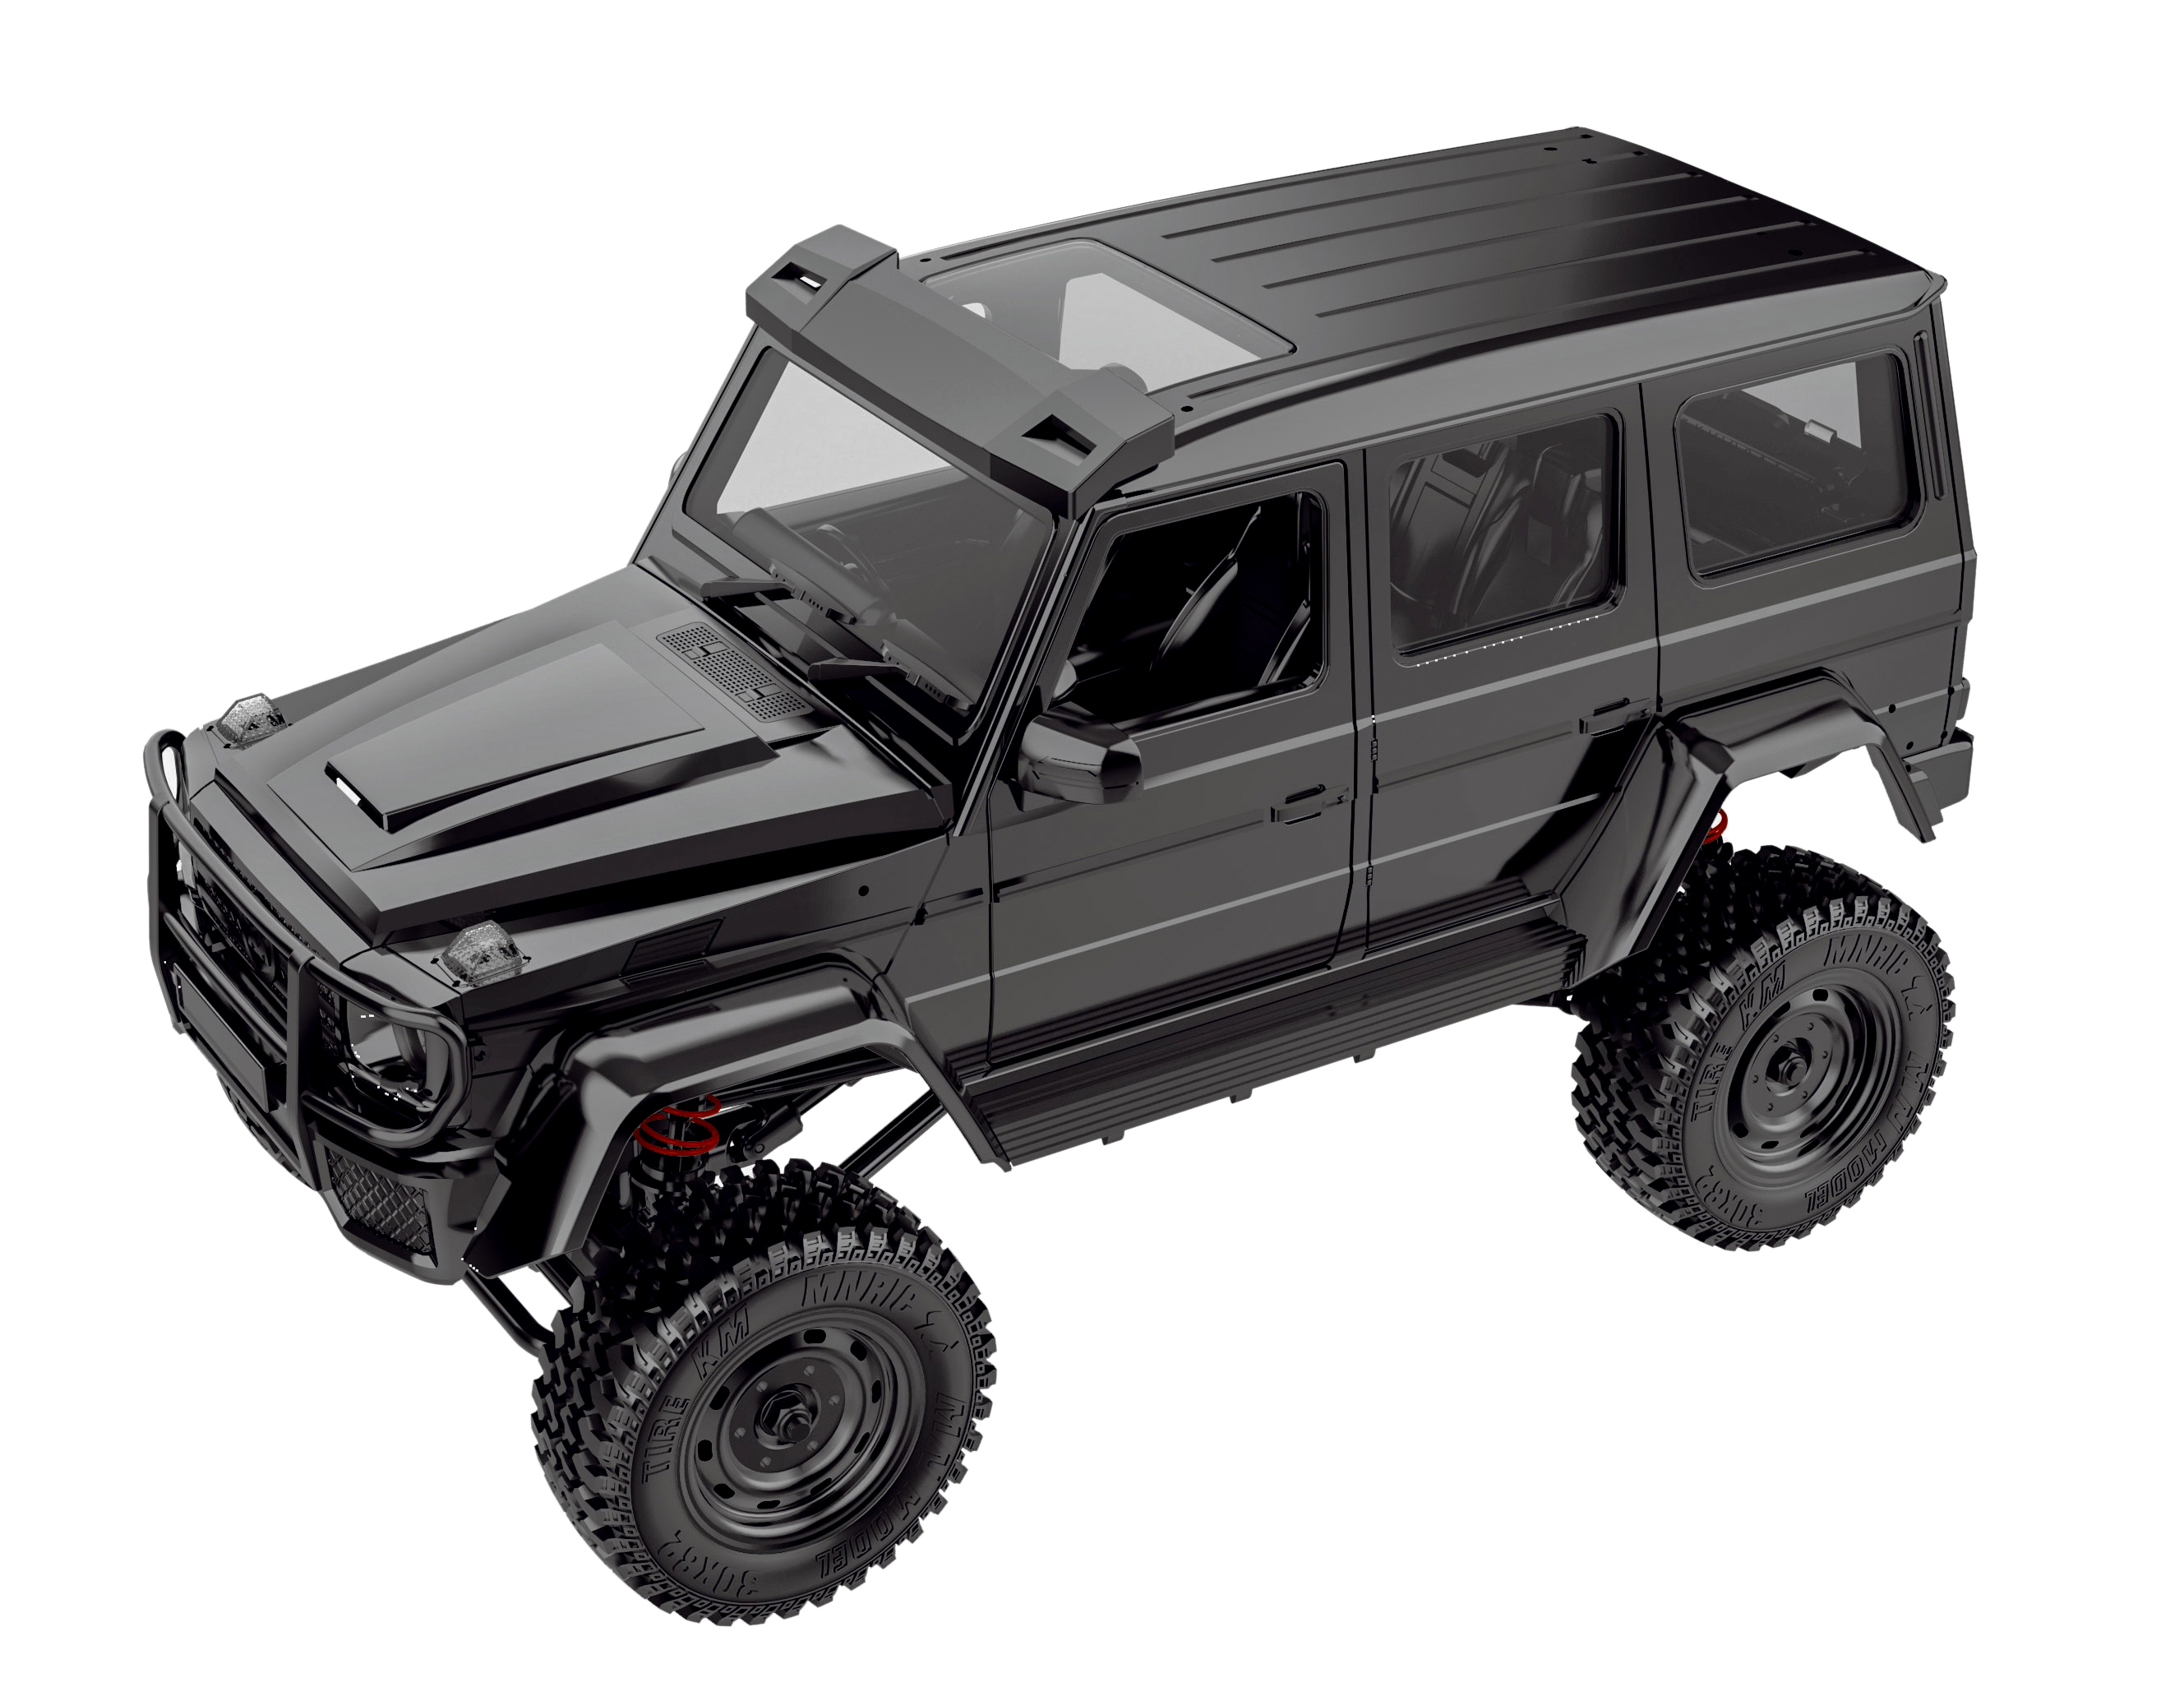 Mn86k 1/12 2.4g Four-wheel Drive Climbing Off-road Vehicle Toy G500 Assembly  Version black